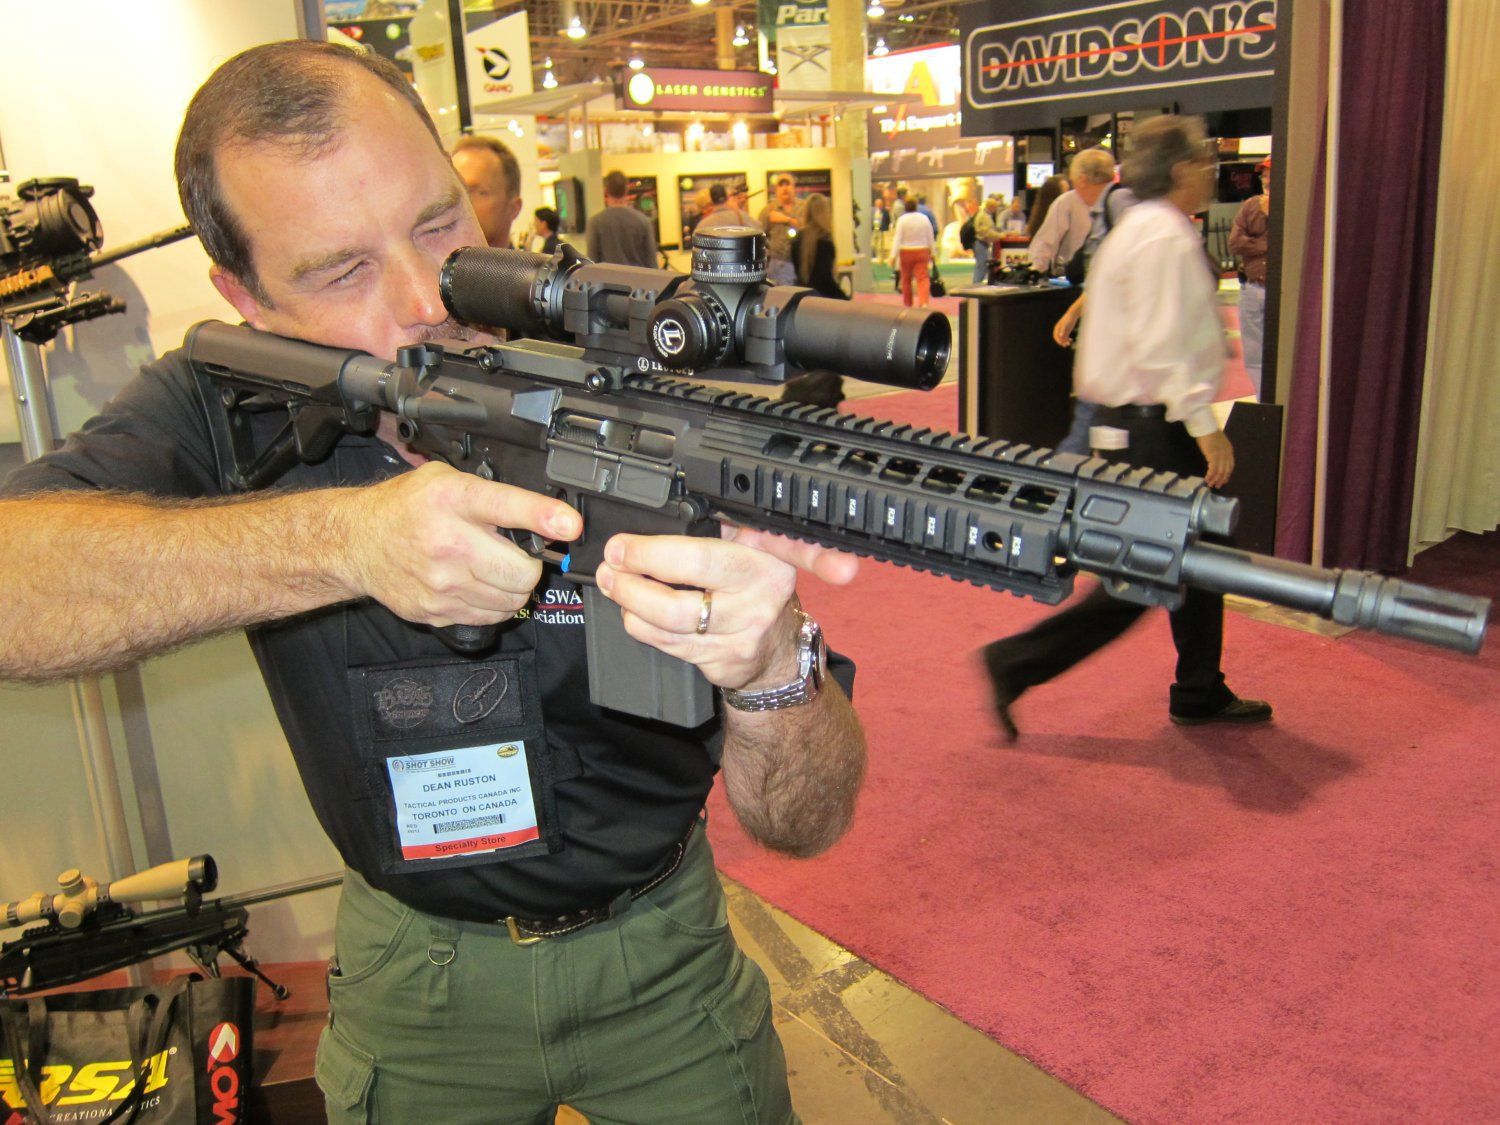 <!--:en-->SIG Sauer SIG516 (5.56mm) and SIG716 (7.62mm) Short-Stroke Gas Piston/Op-Rod System Tactical AR Rifle/Carbine/SBR Series at SHOT Show 2010 (Photos!) <!--:-->